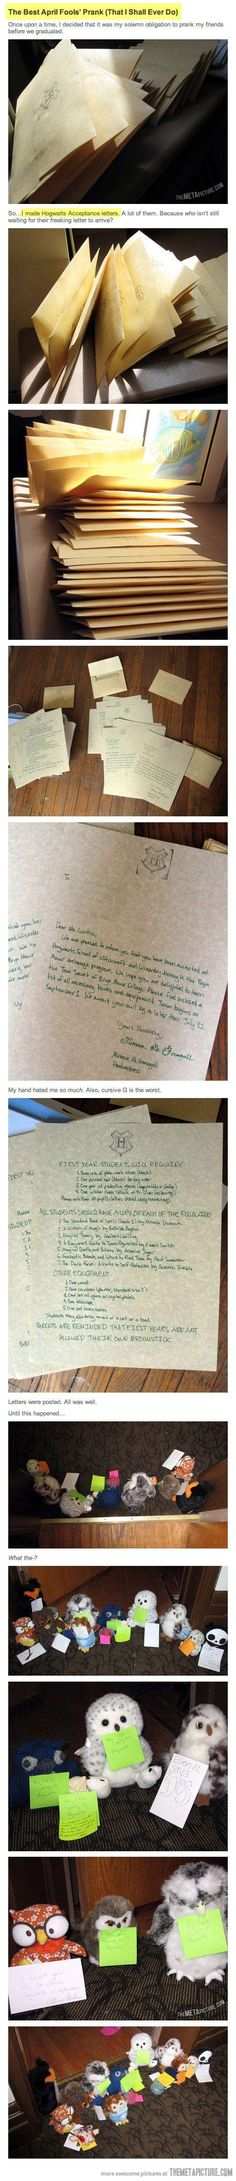 Haha! This is wonderful. I wish someone would do this for me!